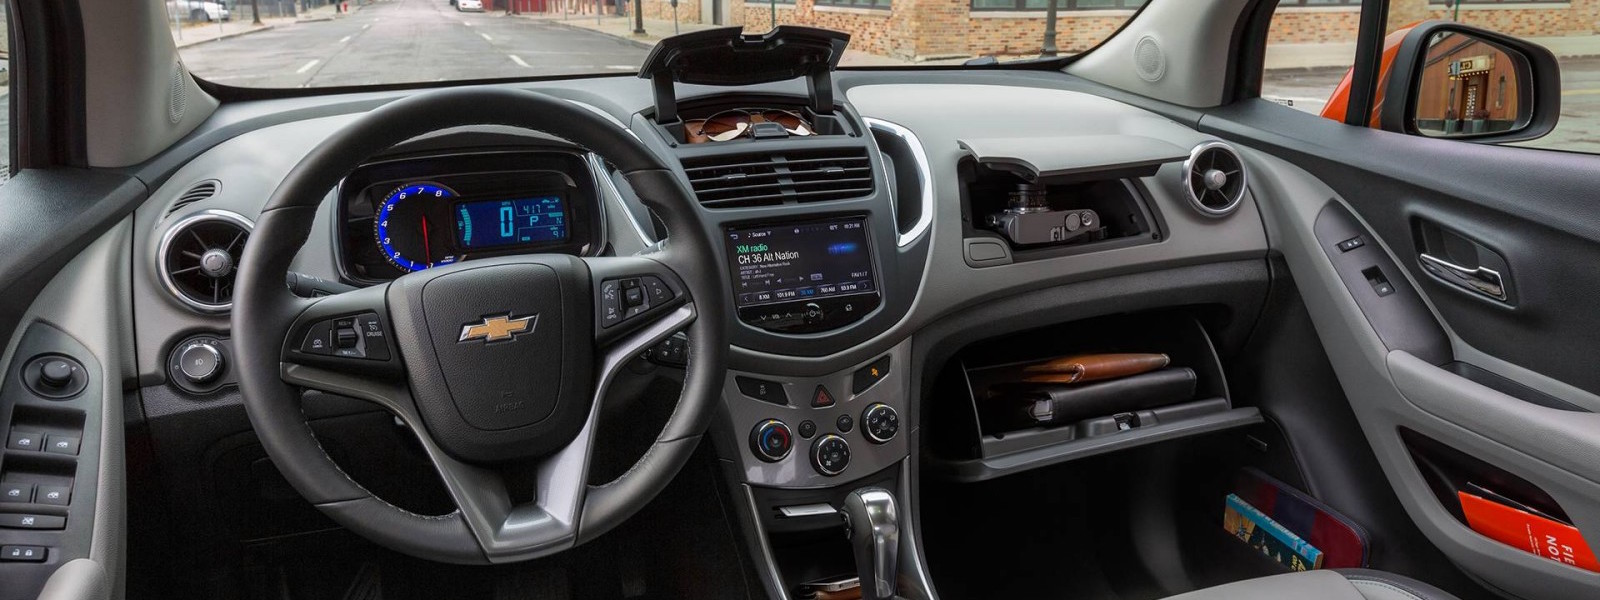 The dashboard features on a 2016 Chevy Trax are shown.